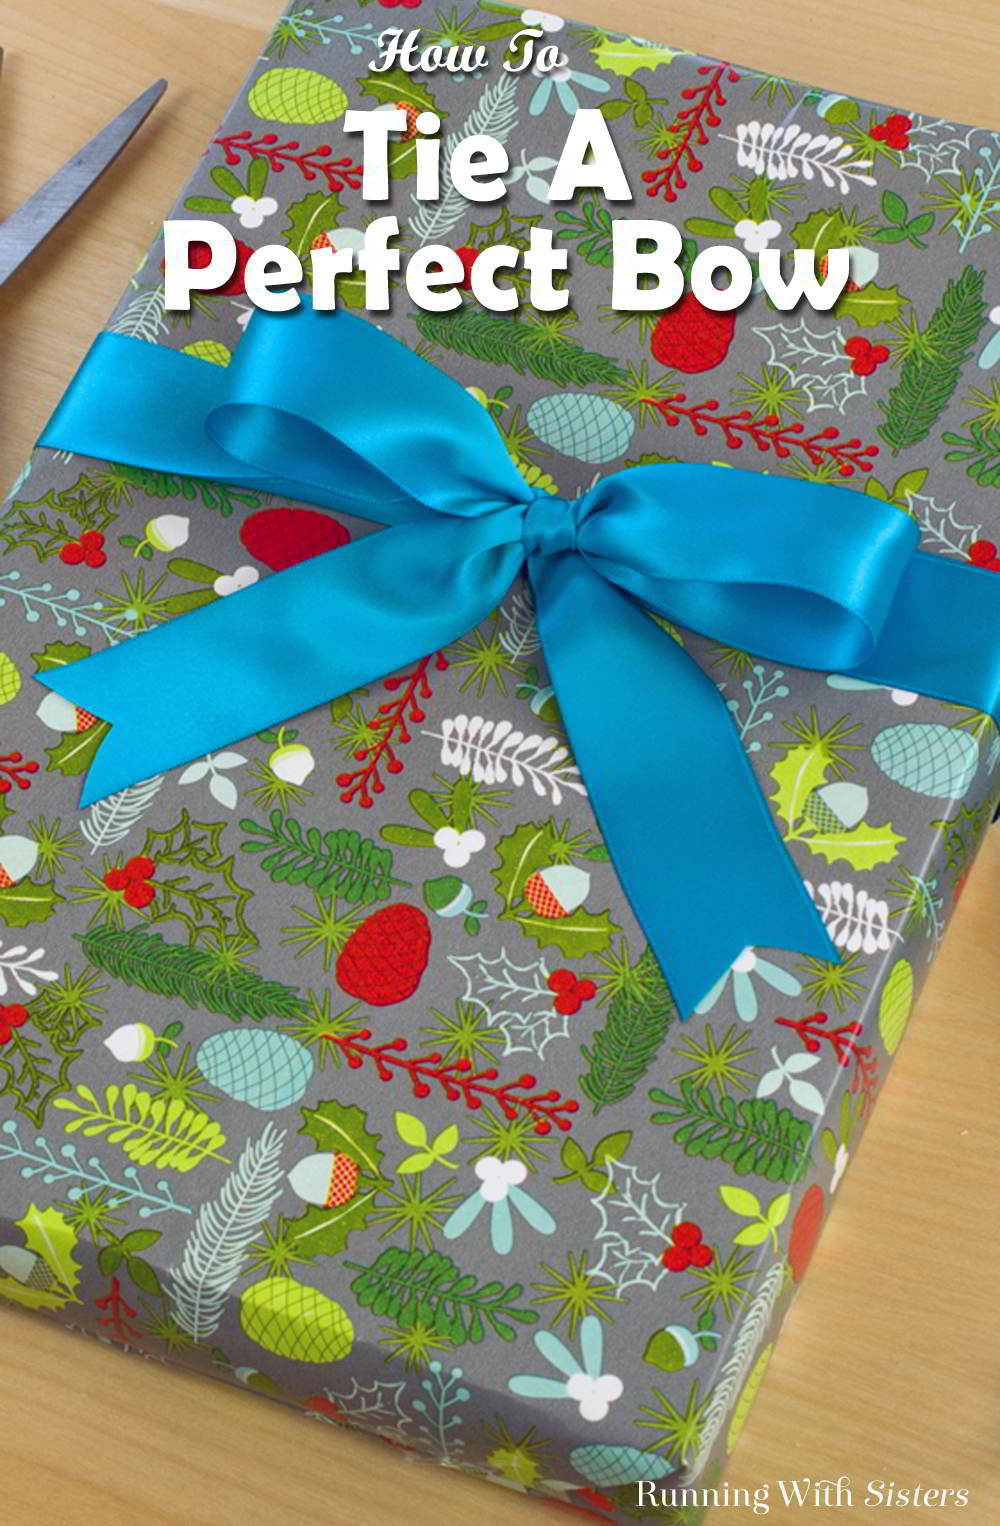 Learn to tie a perfect bow. In this video and step by step tutorial you'll learn how to tie a perfect bow and how to cut the ends. No more twisting bows!